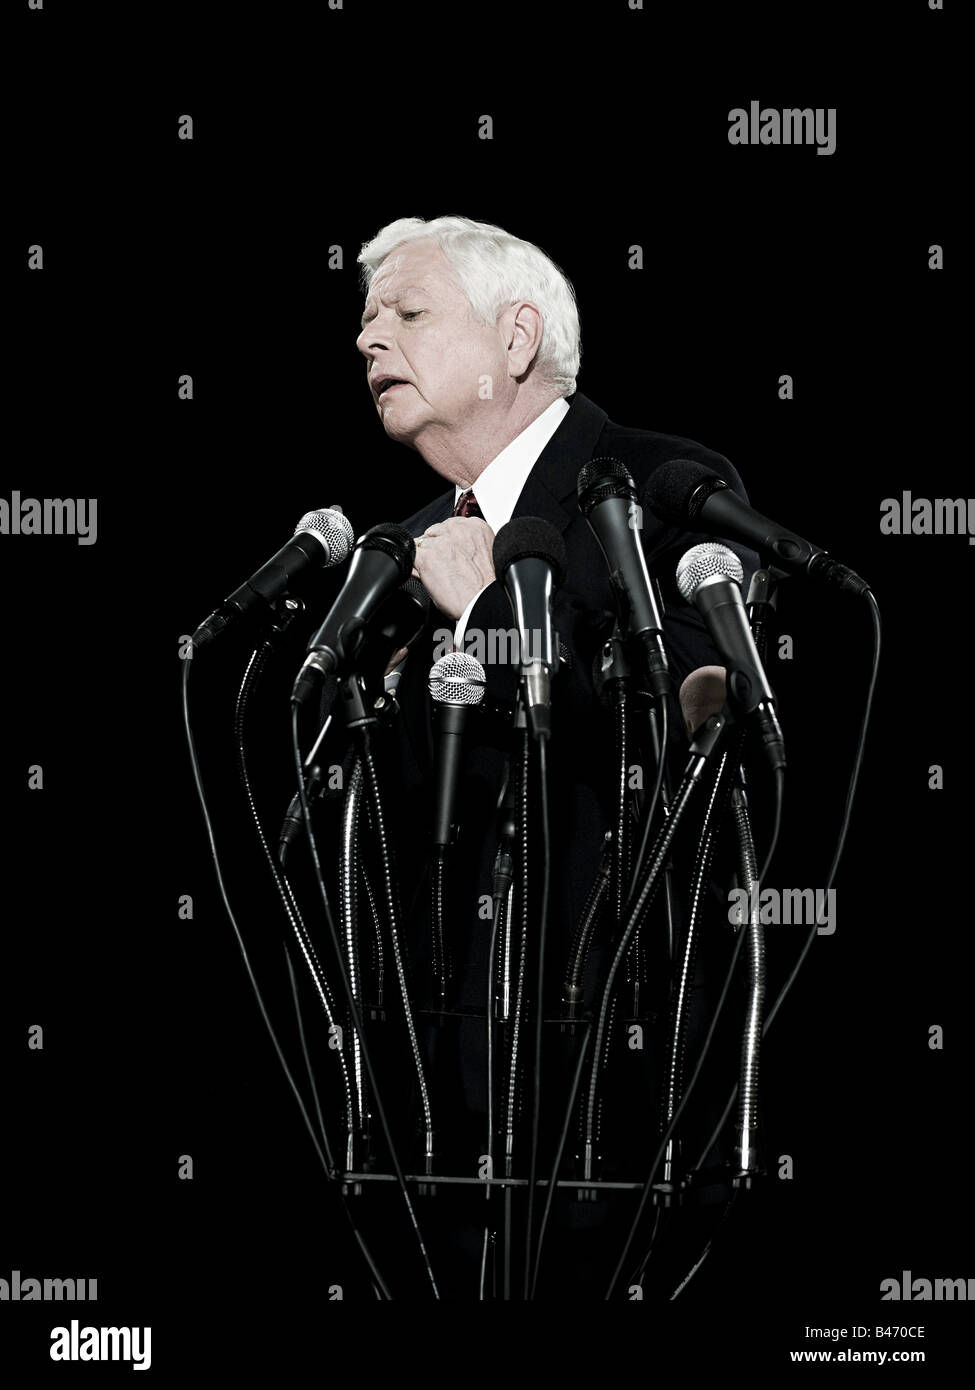 Politician and microphones - Stock Image